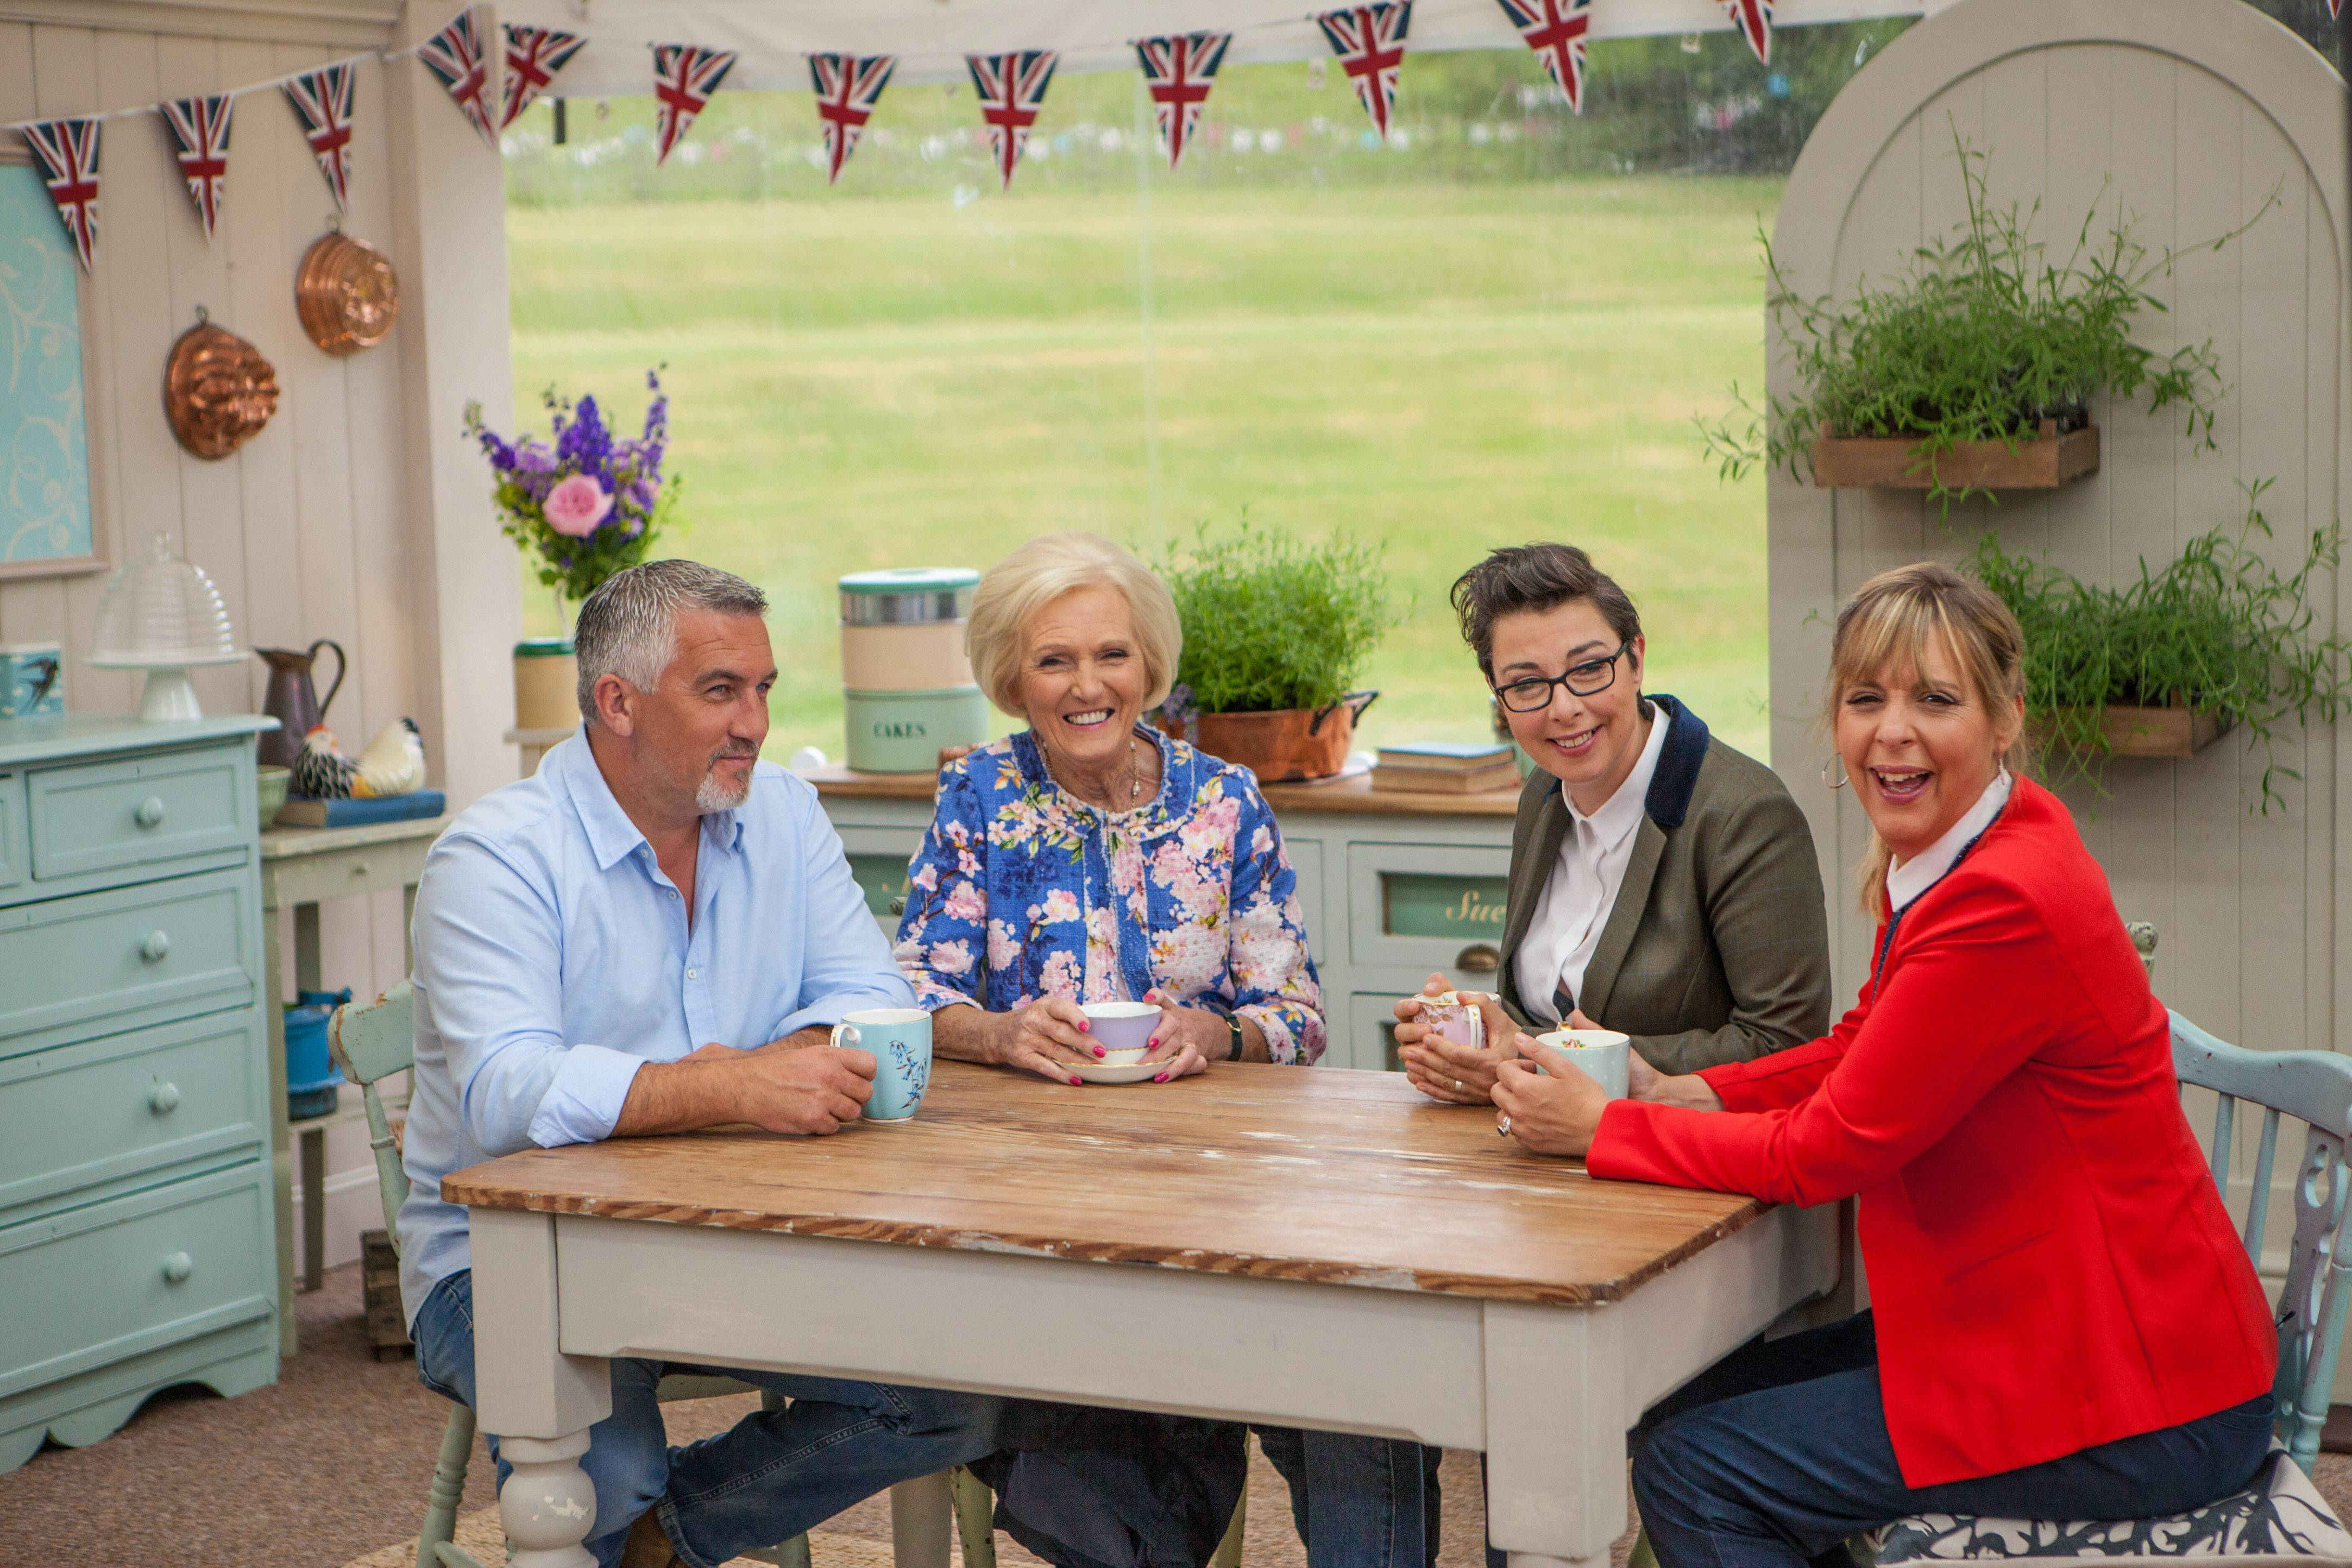 The Kitchen Show the great british baking show returns to pbs for a fourth season